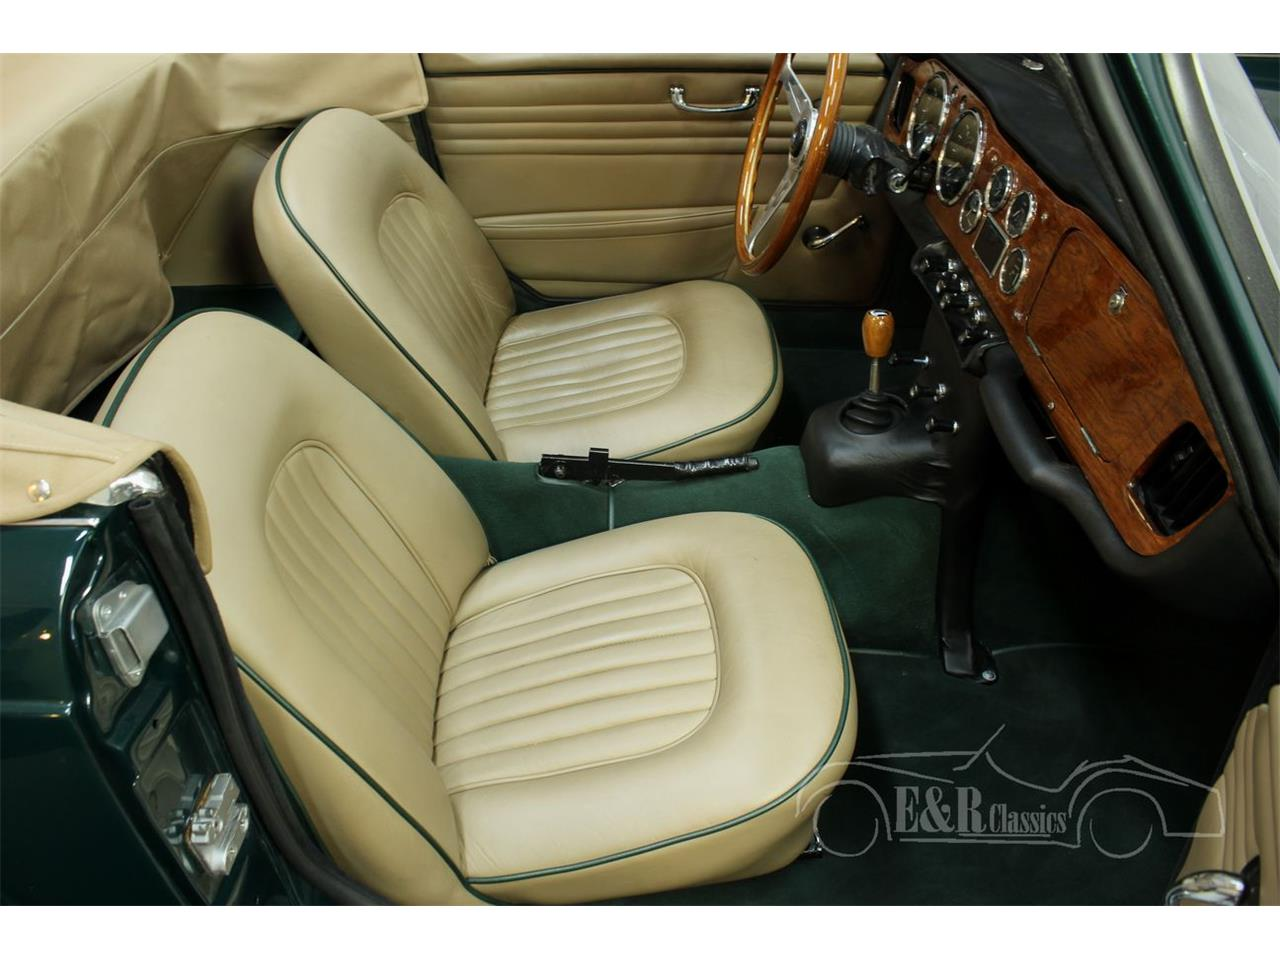 Large Picture of 1967 Triumph TR4 - $55,750.00 - Q45O